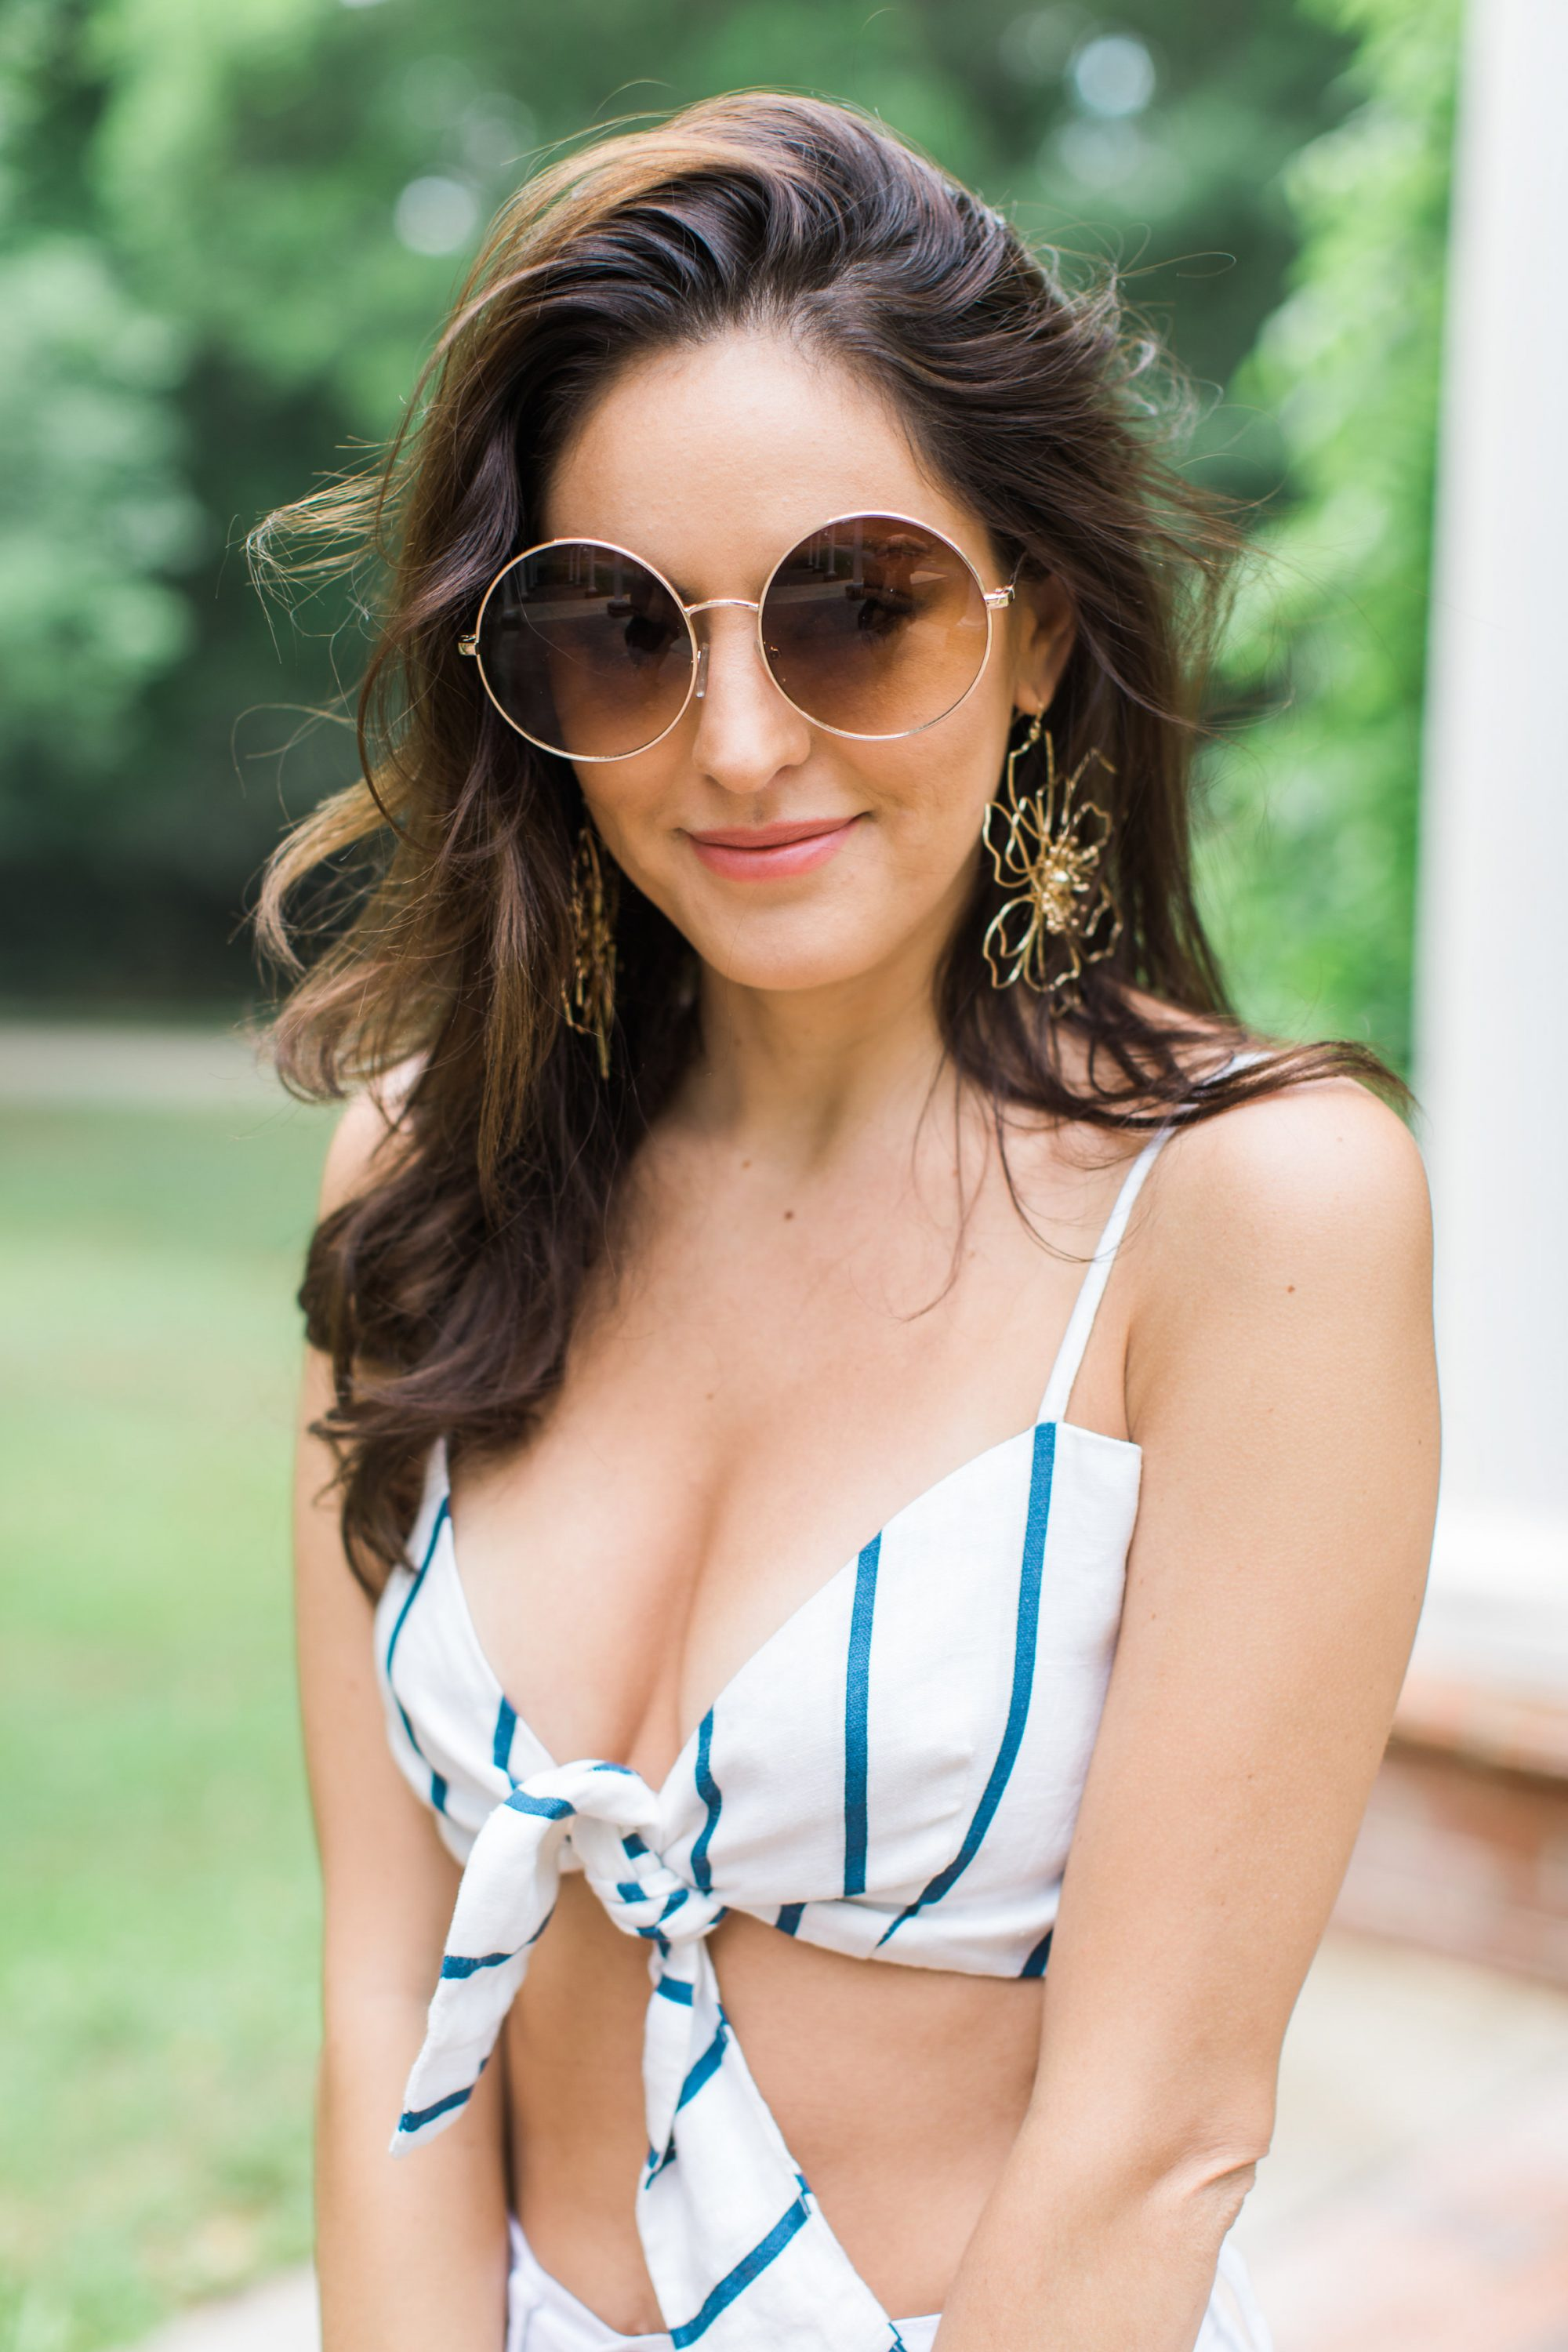 Baublebar Blossom Drop Earrings, FAITHFULL THE BRAND Garnier Top, spring outfit ideas, summer outfit ideas, what to wear for memorial day, what to wear for july 4, fourth of july outfit ideas, summer outfit inspiration